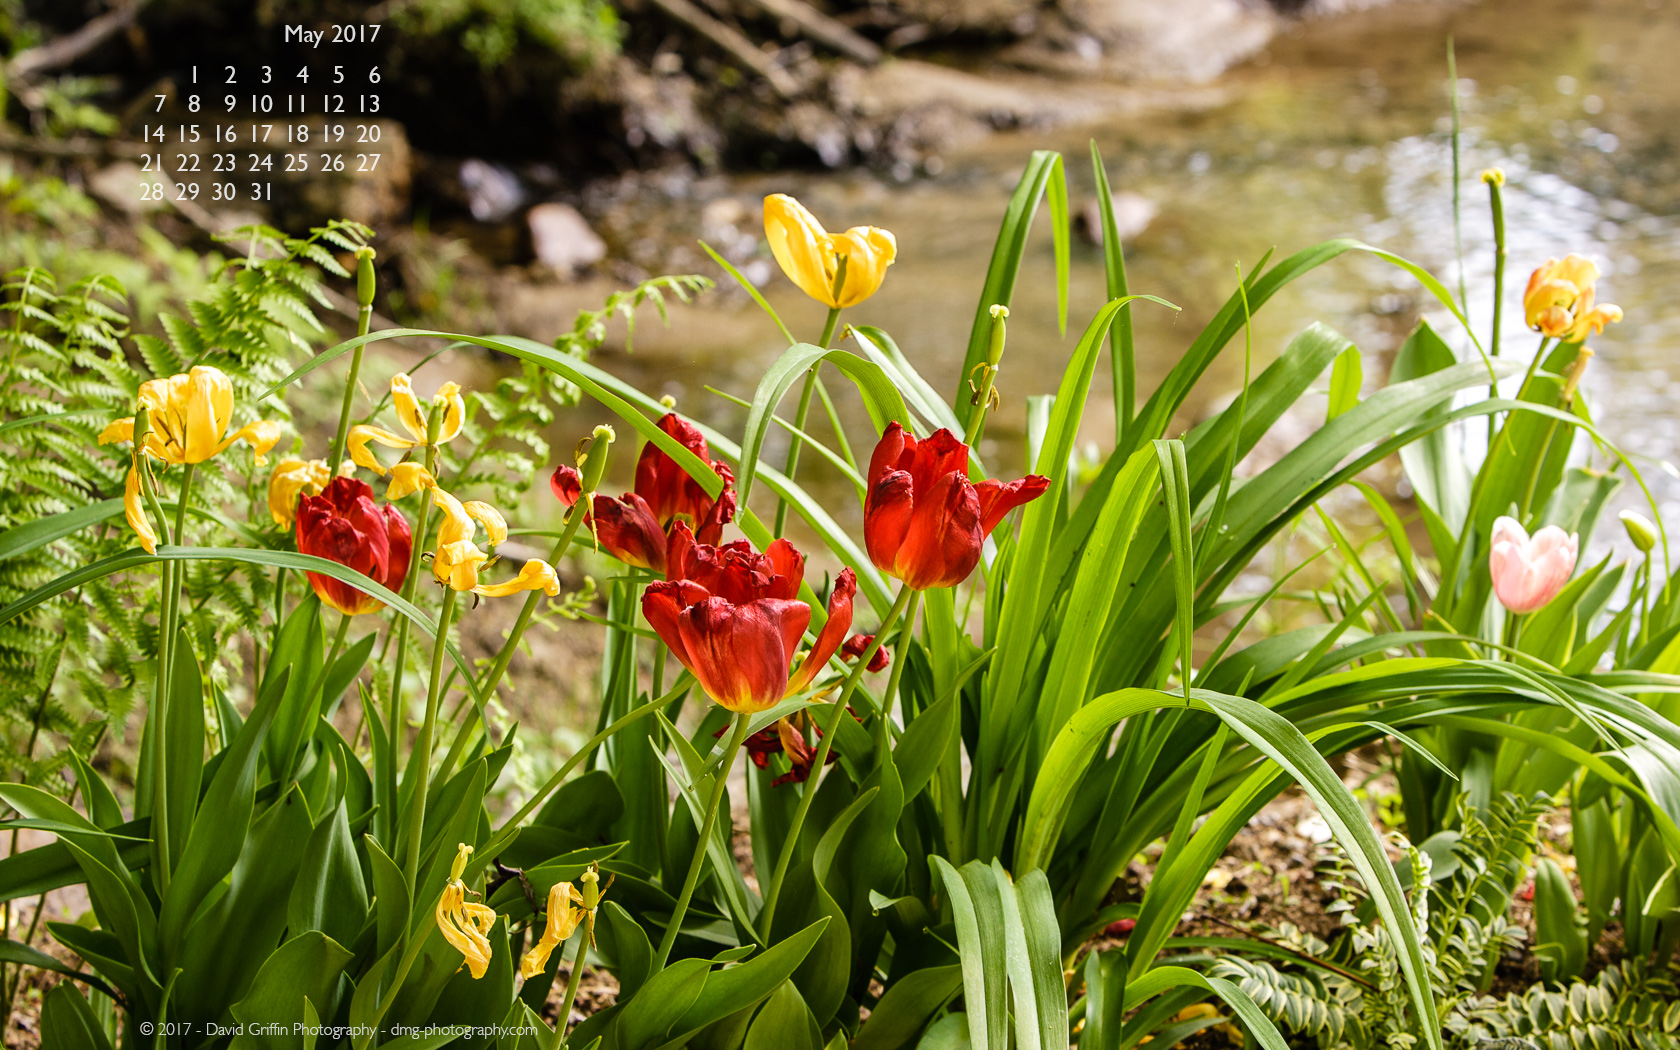 May 2017 Wallpaper David Griffin Photography 1680x1050